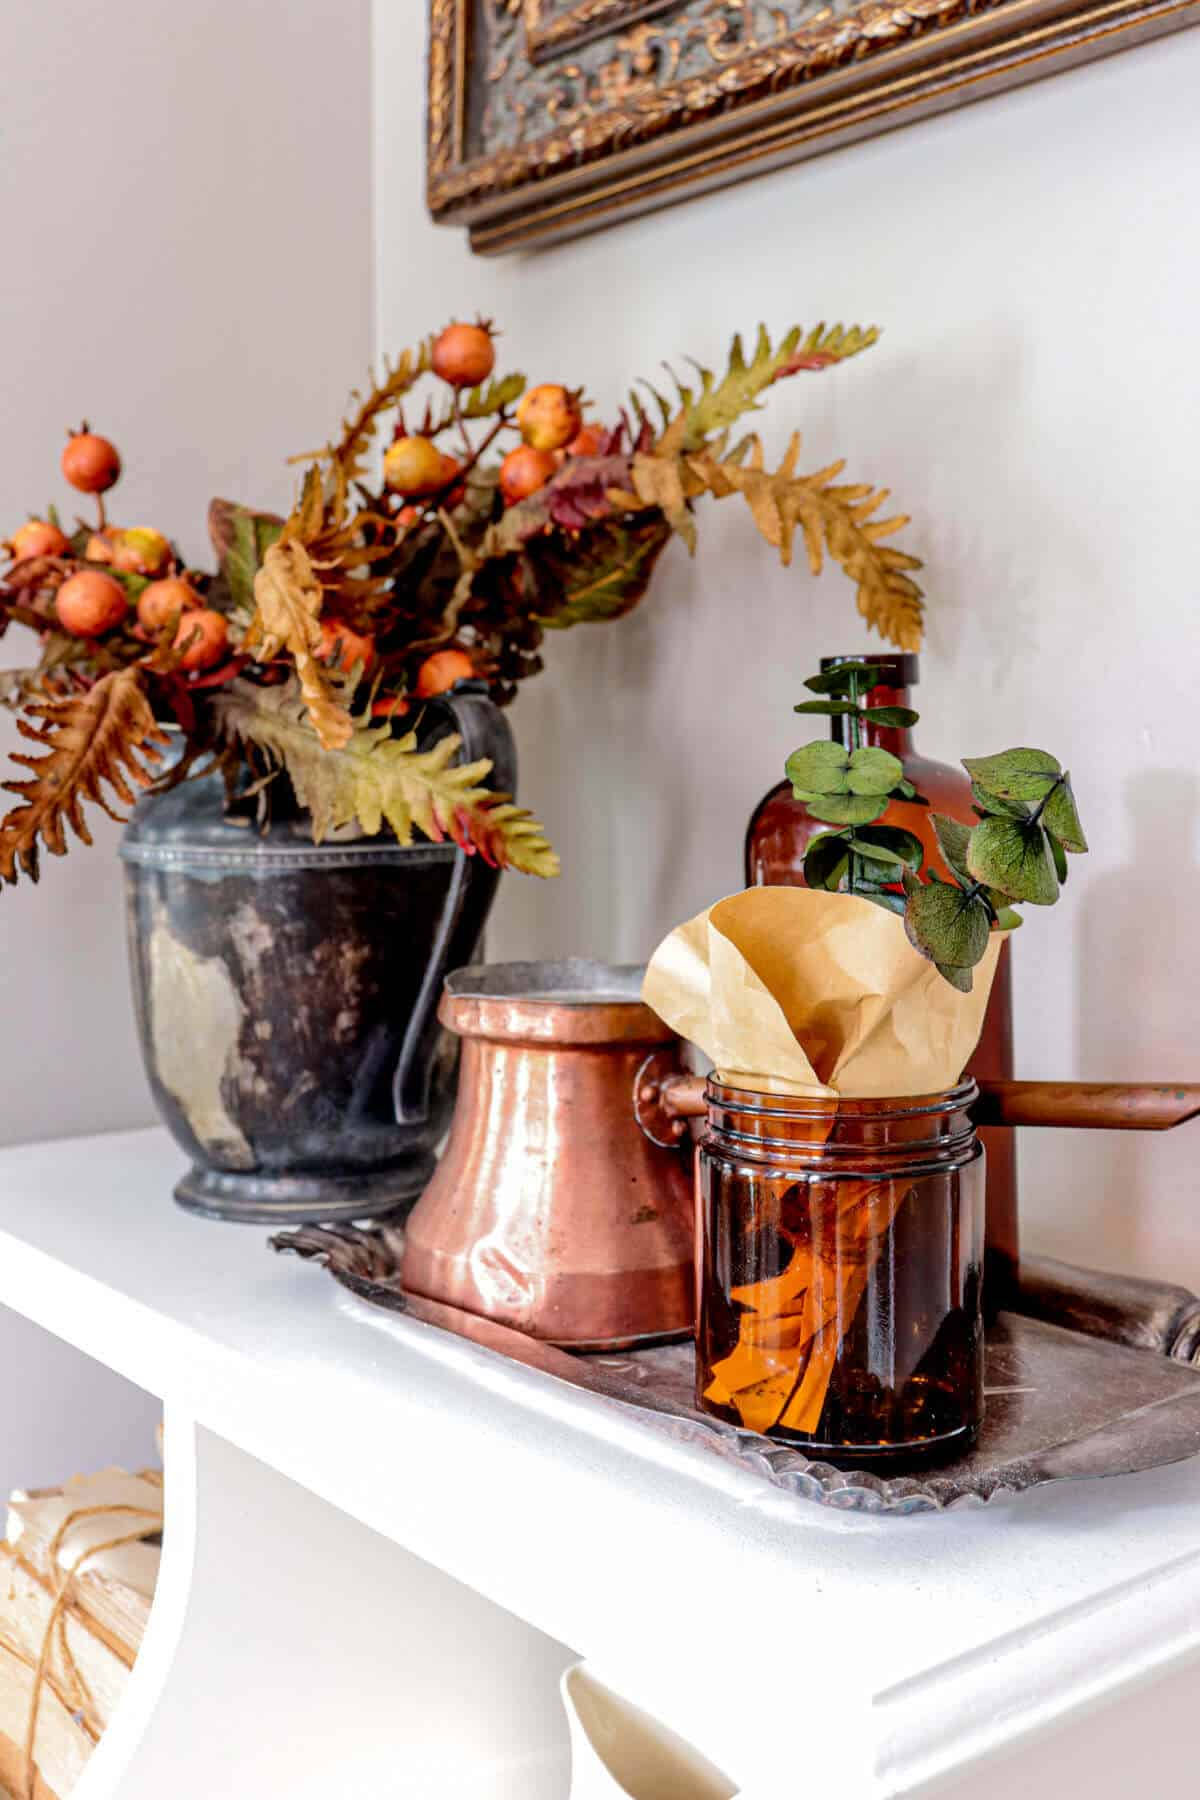 tarnished silver pitcher filled with orange fall greenery next to amber bottles and copper elements